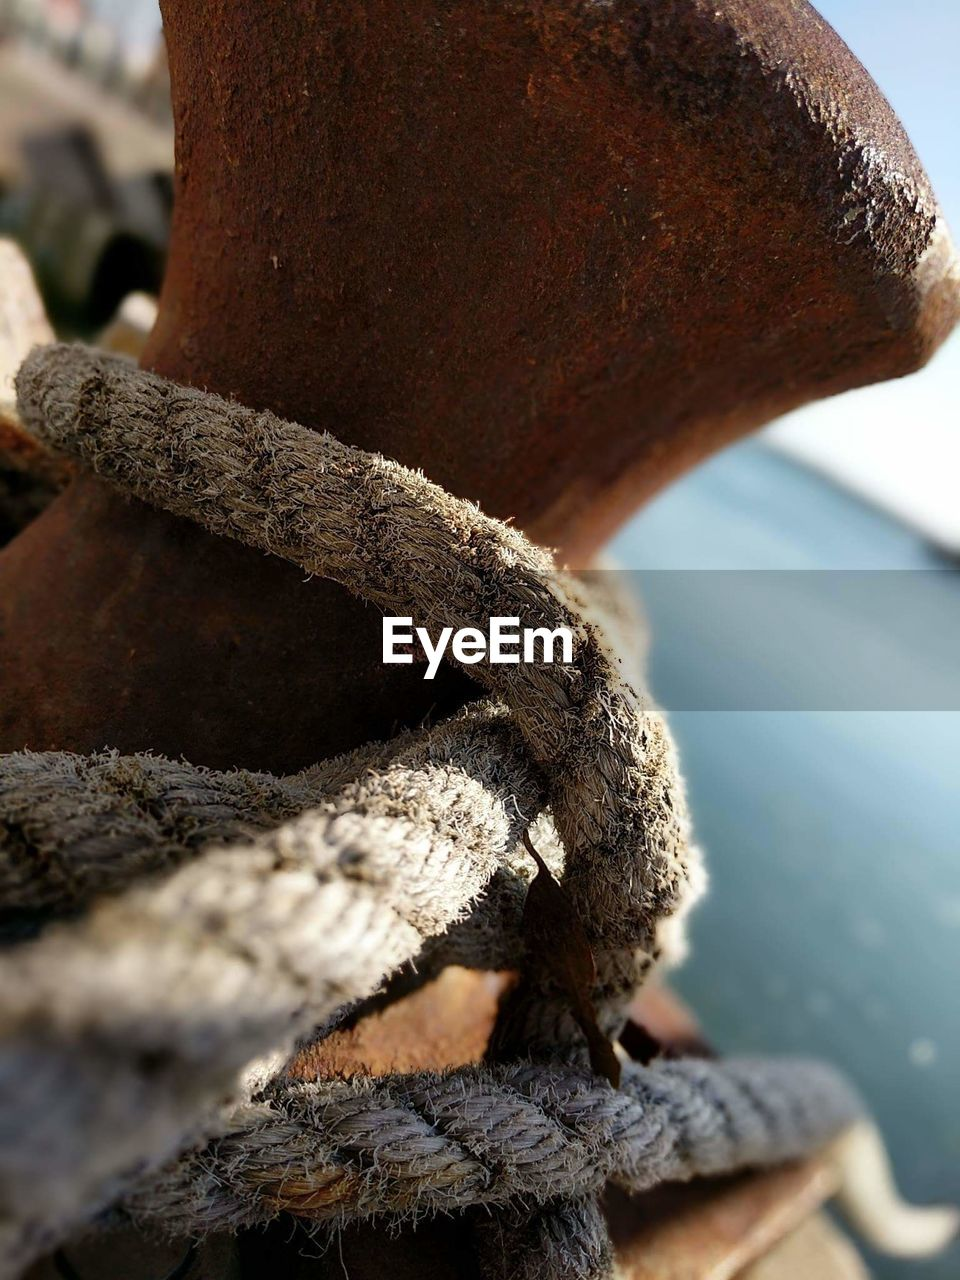 close-up, rope, no people, focus on foreground, day, strength, textured, detail, nature, outdoors, tied up, connection, selective focus, brown, metal, pattern, rough, mode of transportation, rusty, twisted